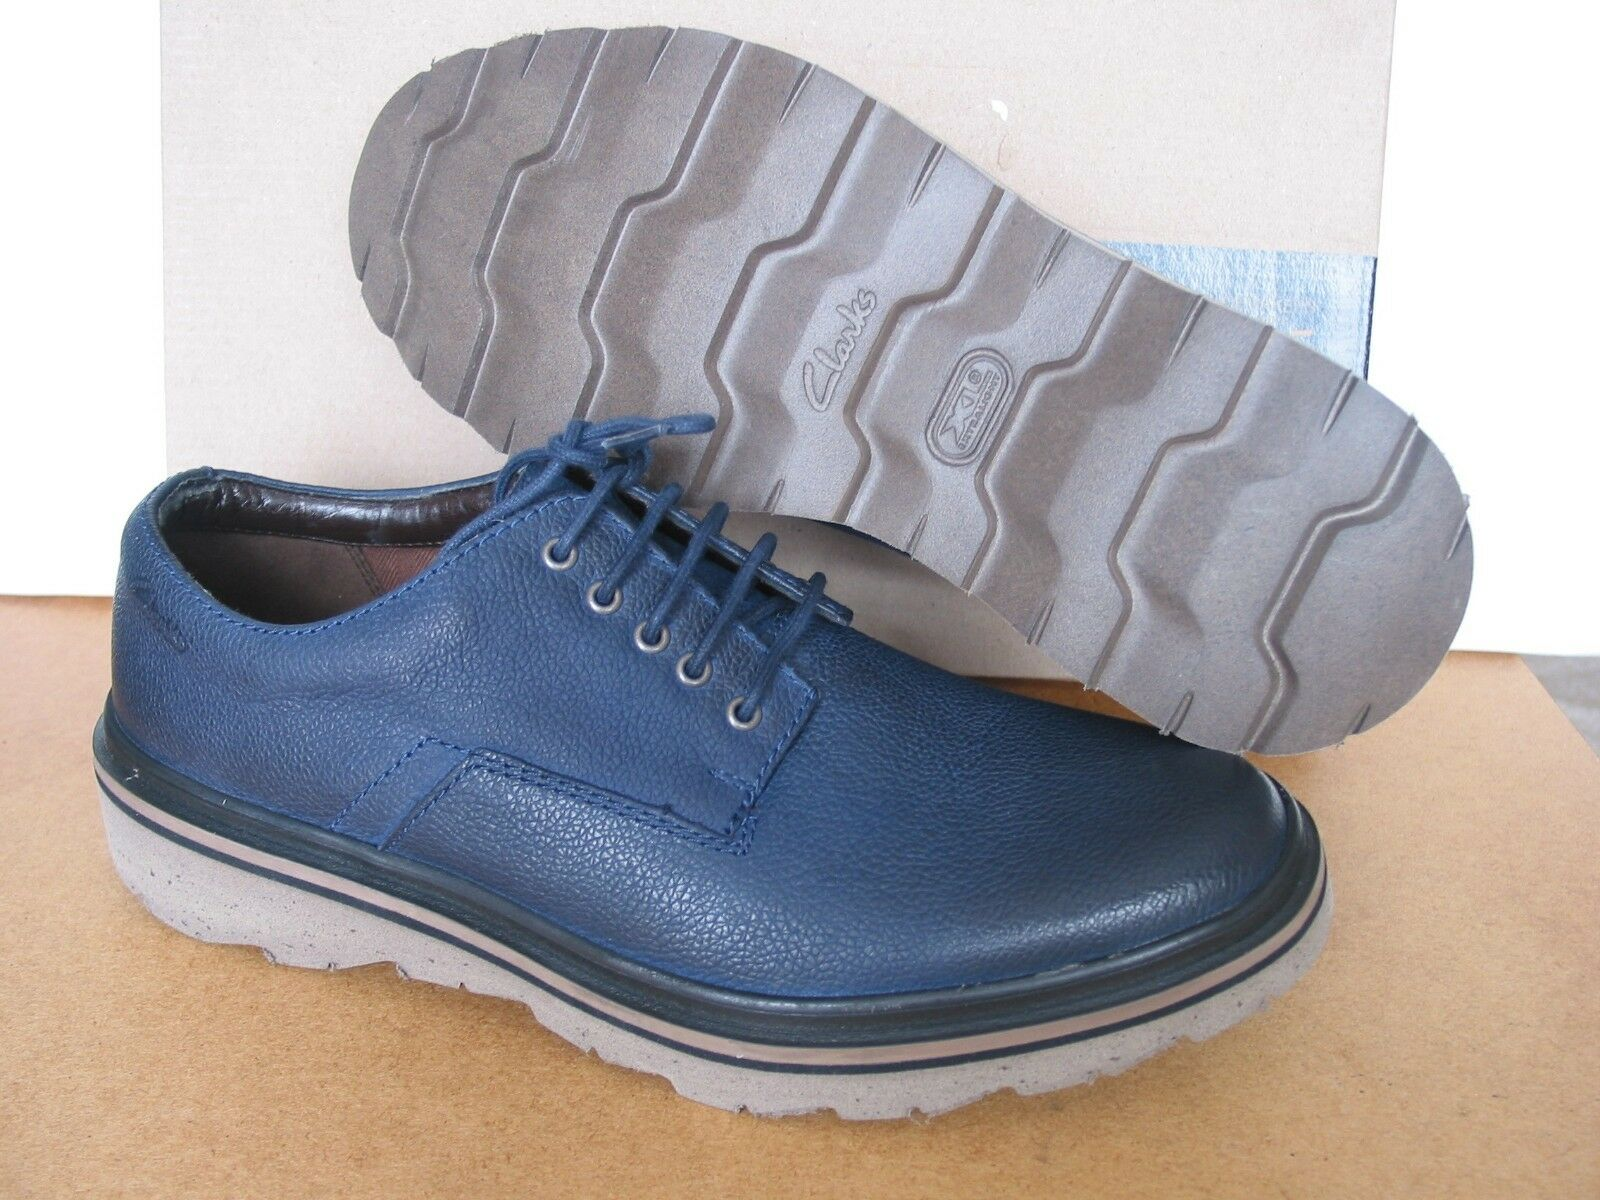 NEW CLARKS EXTRA LIGHT FRELAN WALK NAVY LEATHER SHOES SIZE 7 & 9 G FIT